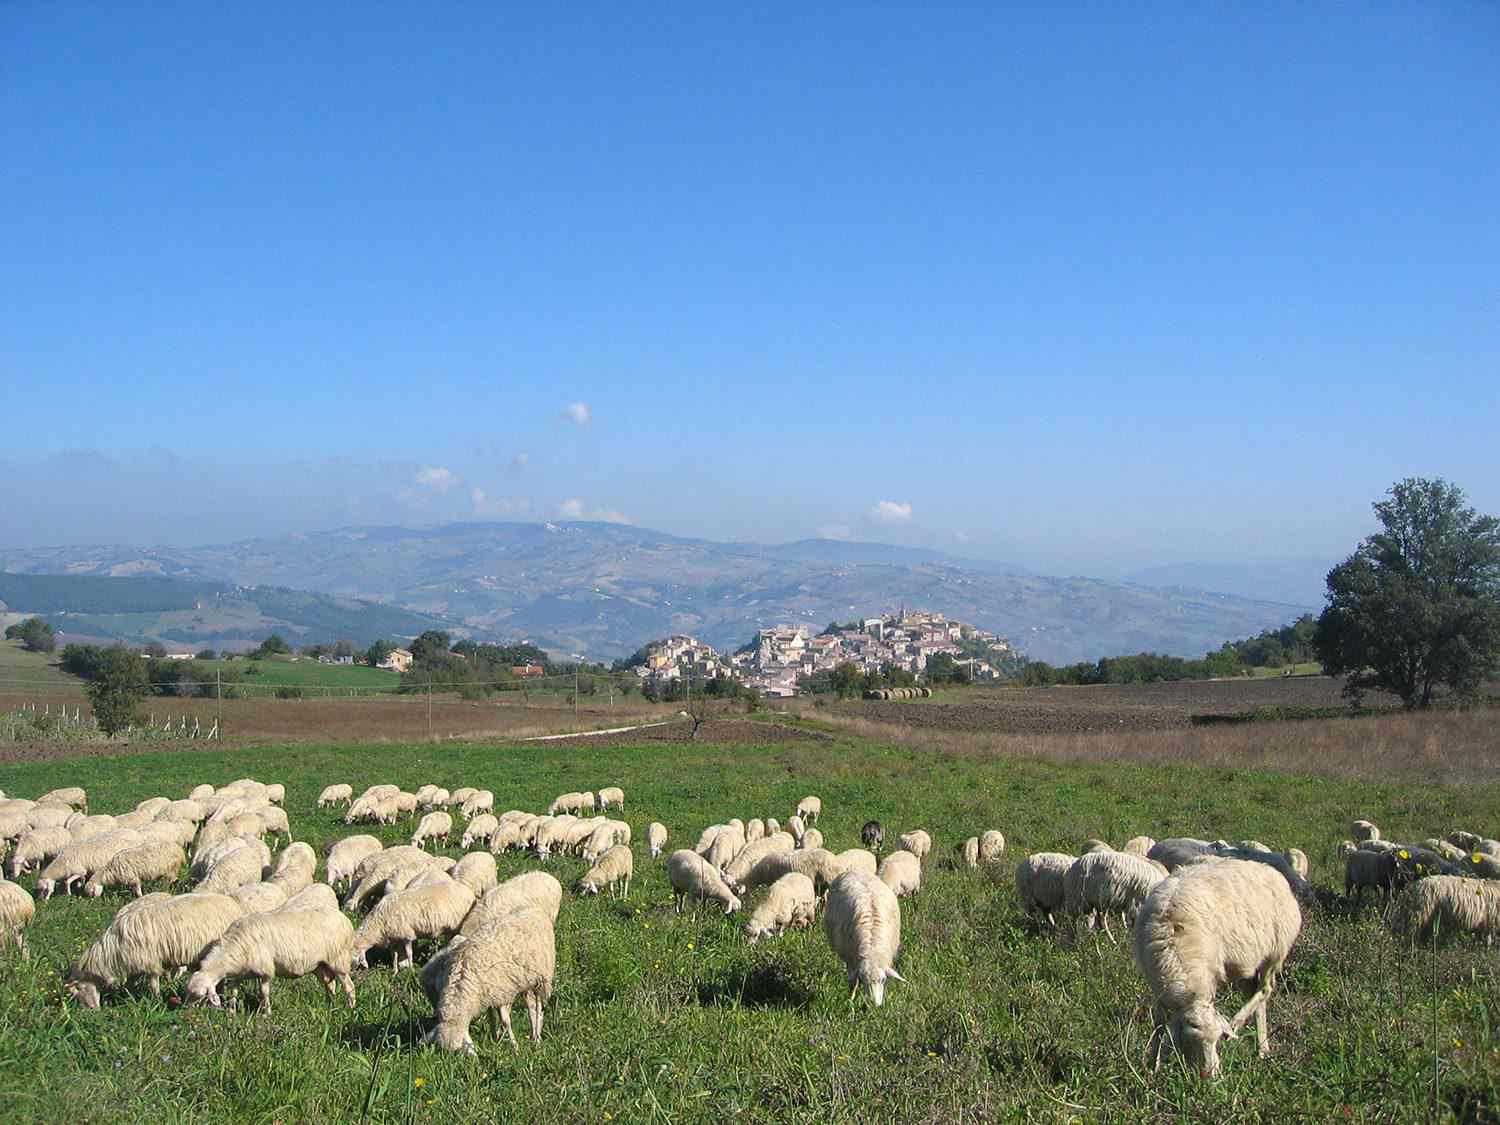 Sheep grazing in a meadow with mountains in the background